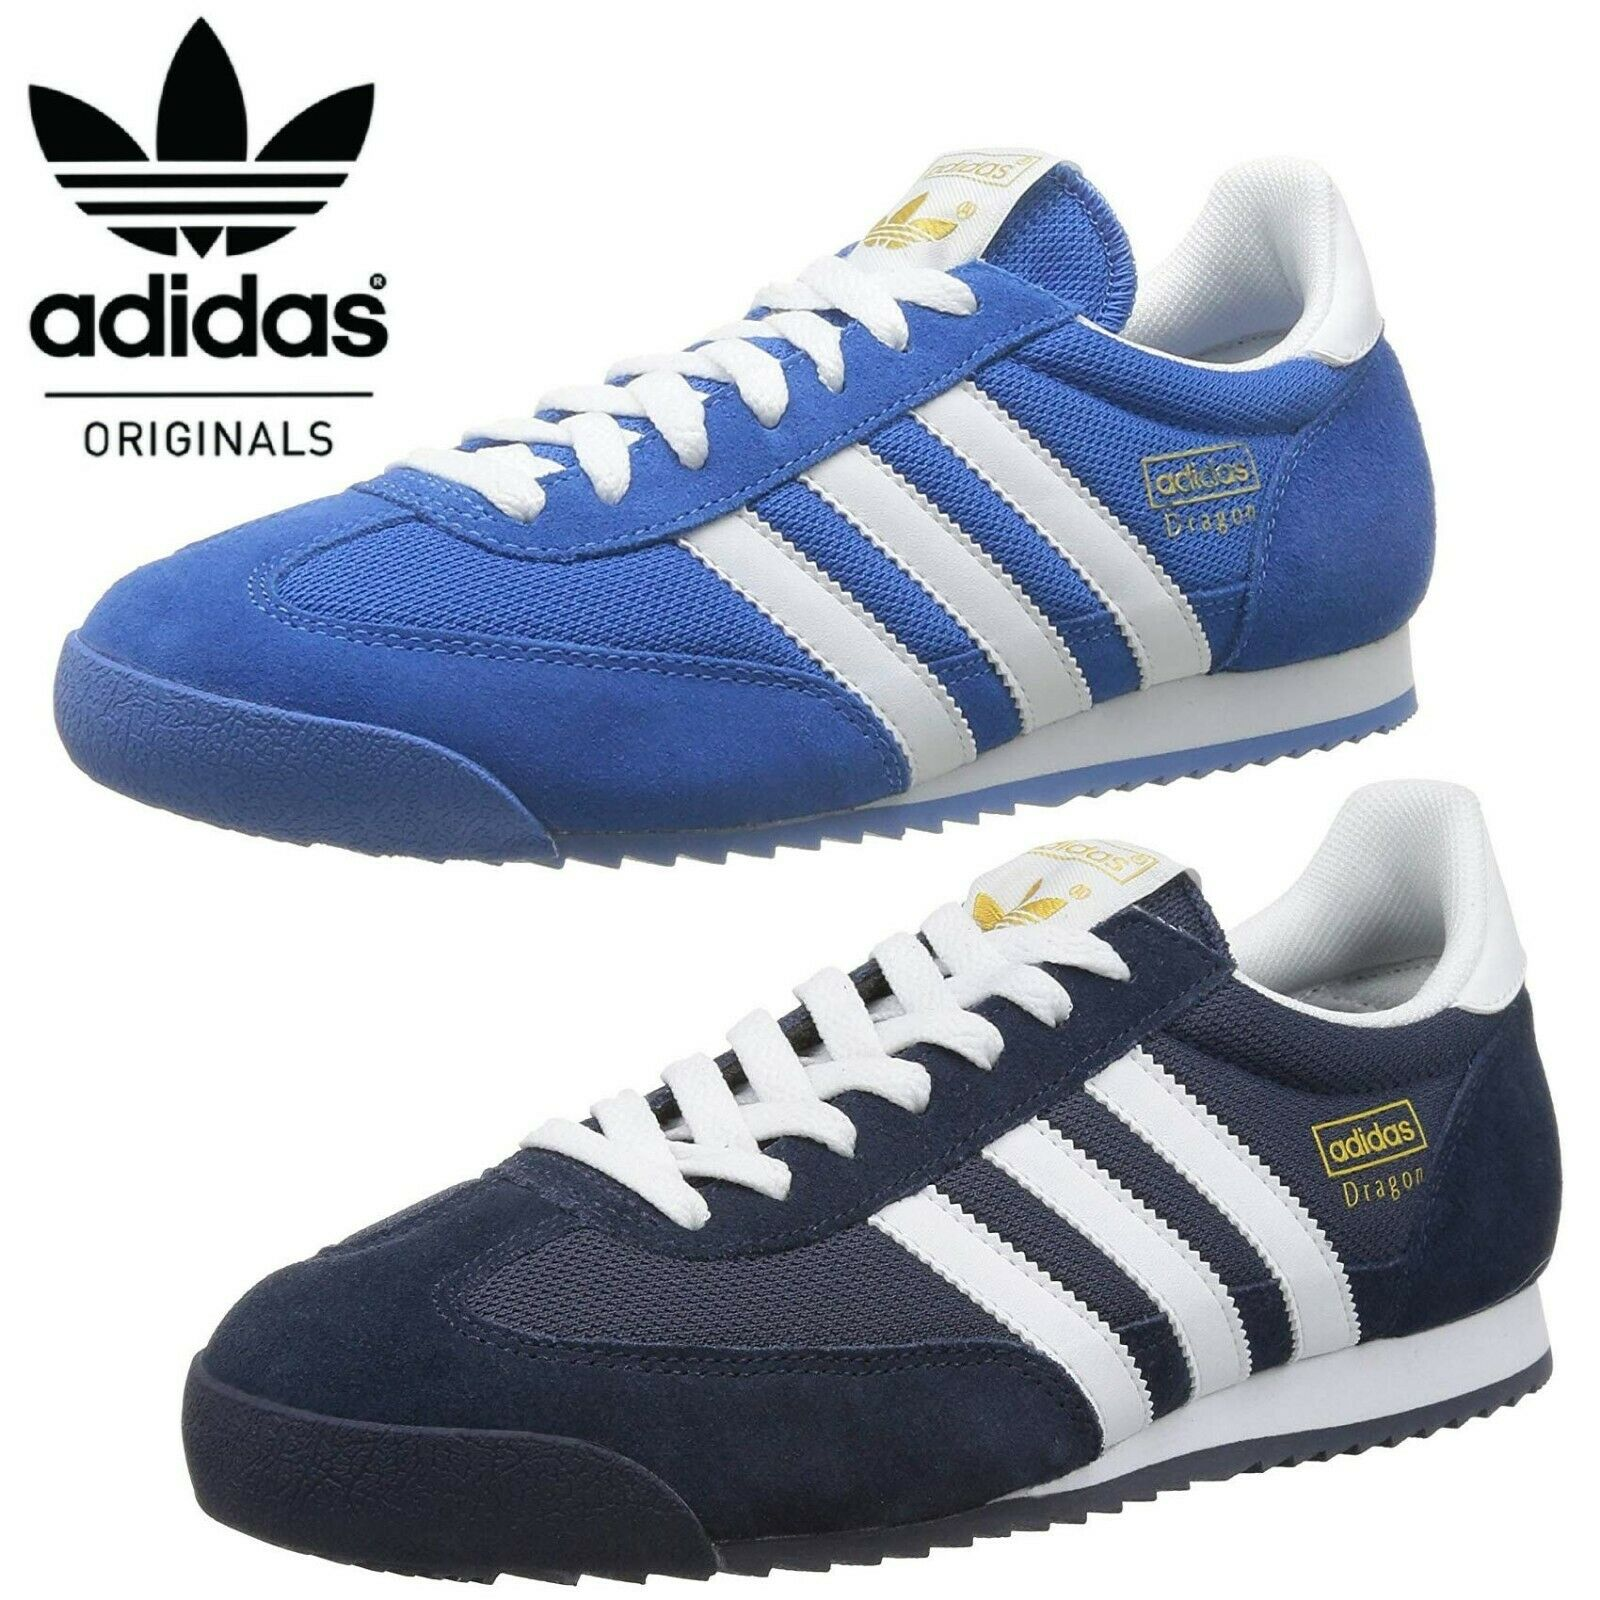 posibilidad Gaviota chasquido  Adidas Originals Dragon Men's Retro Trainers 🔥 FREE UK DELIVERY 🔥 | eBay